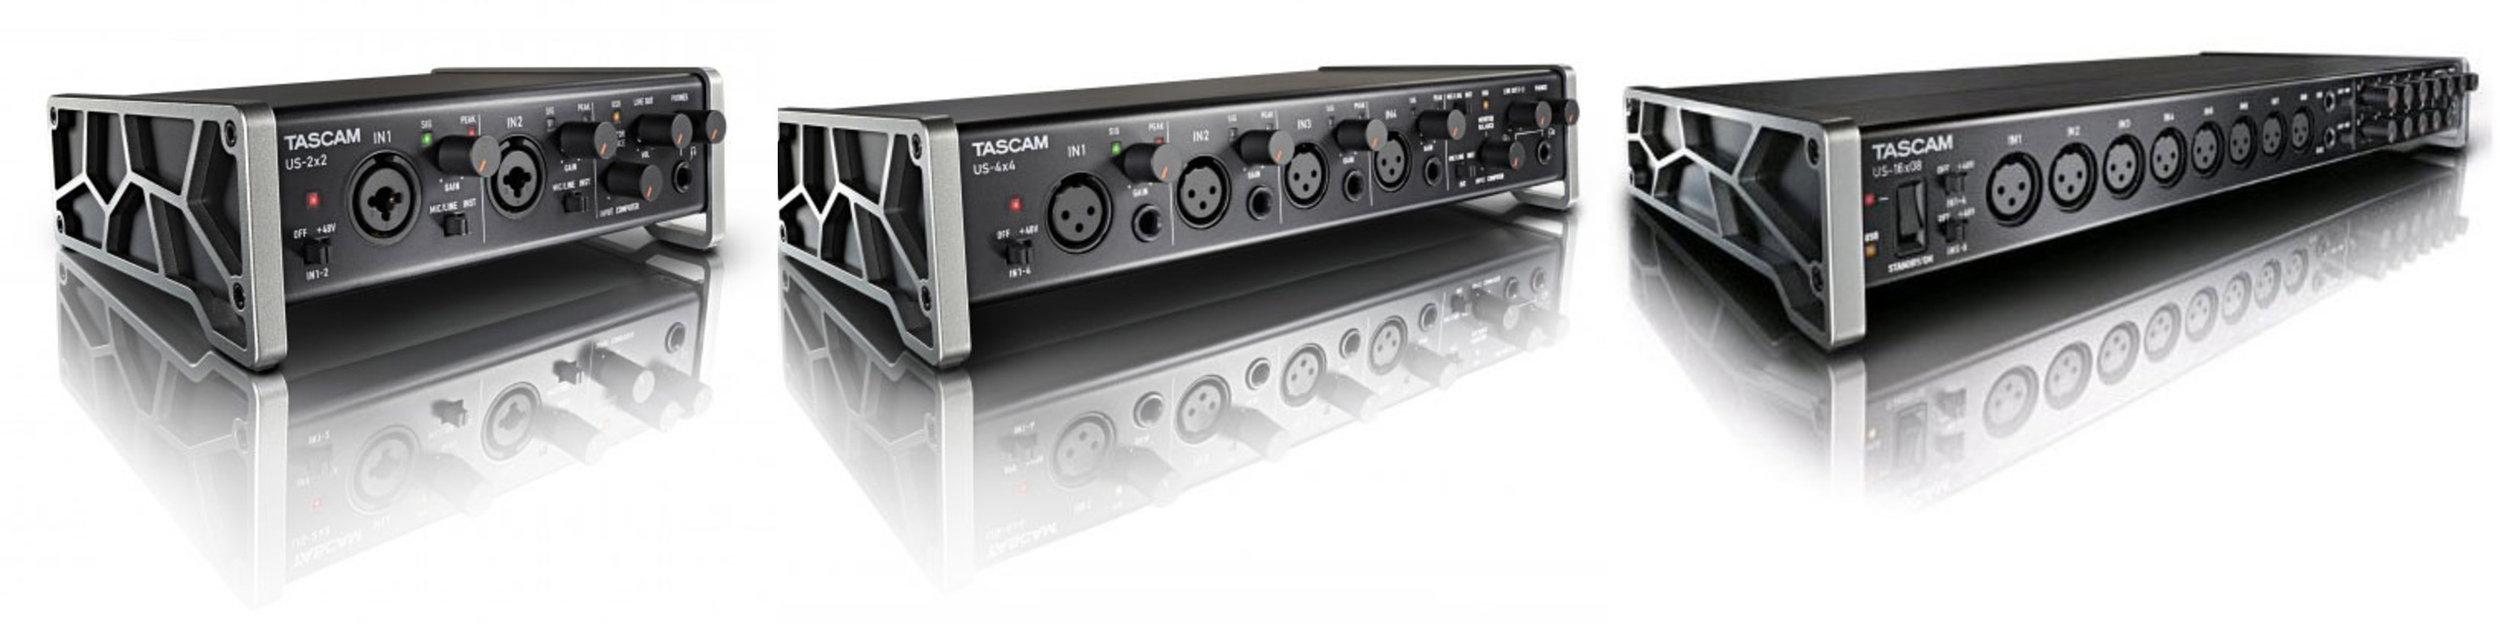 budget-afforable-low-cost-pro-tools-audio-interfaces.jpg